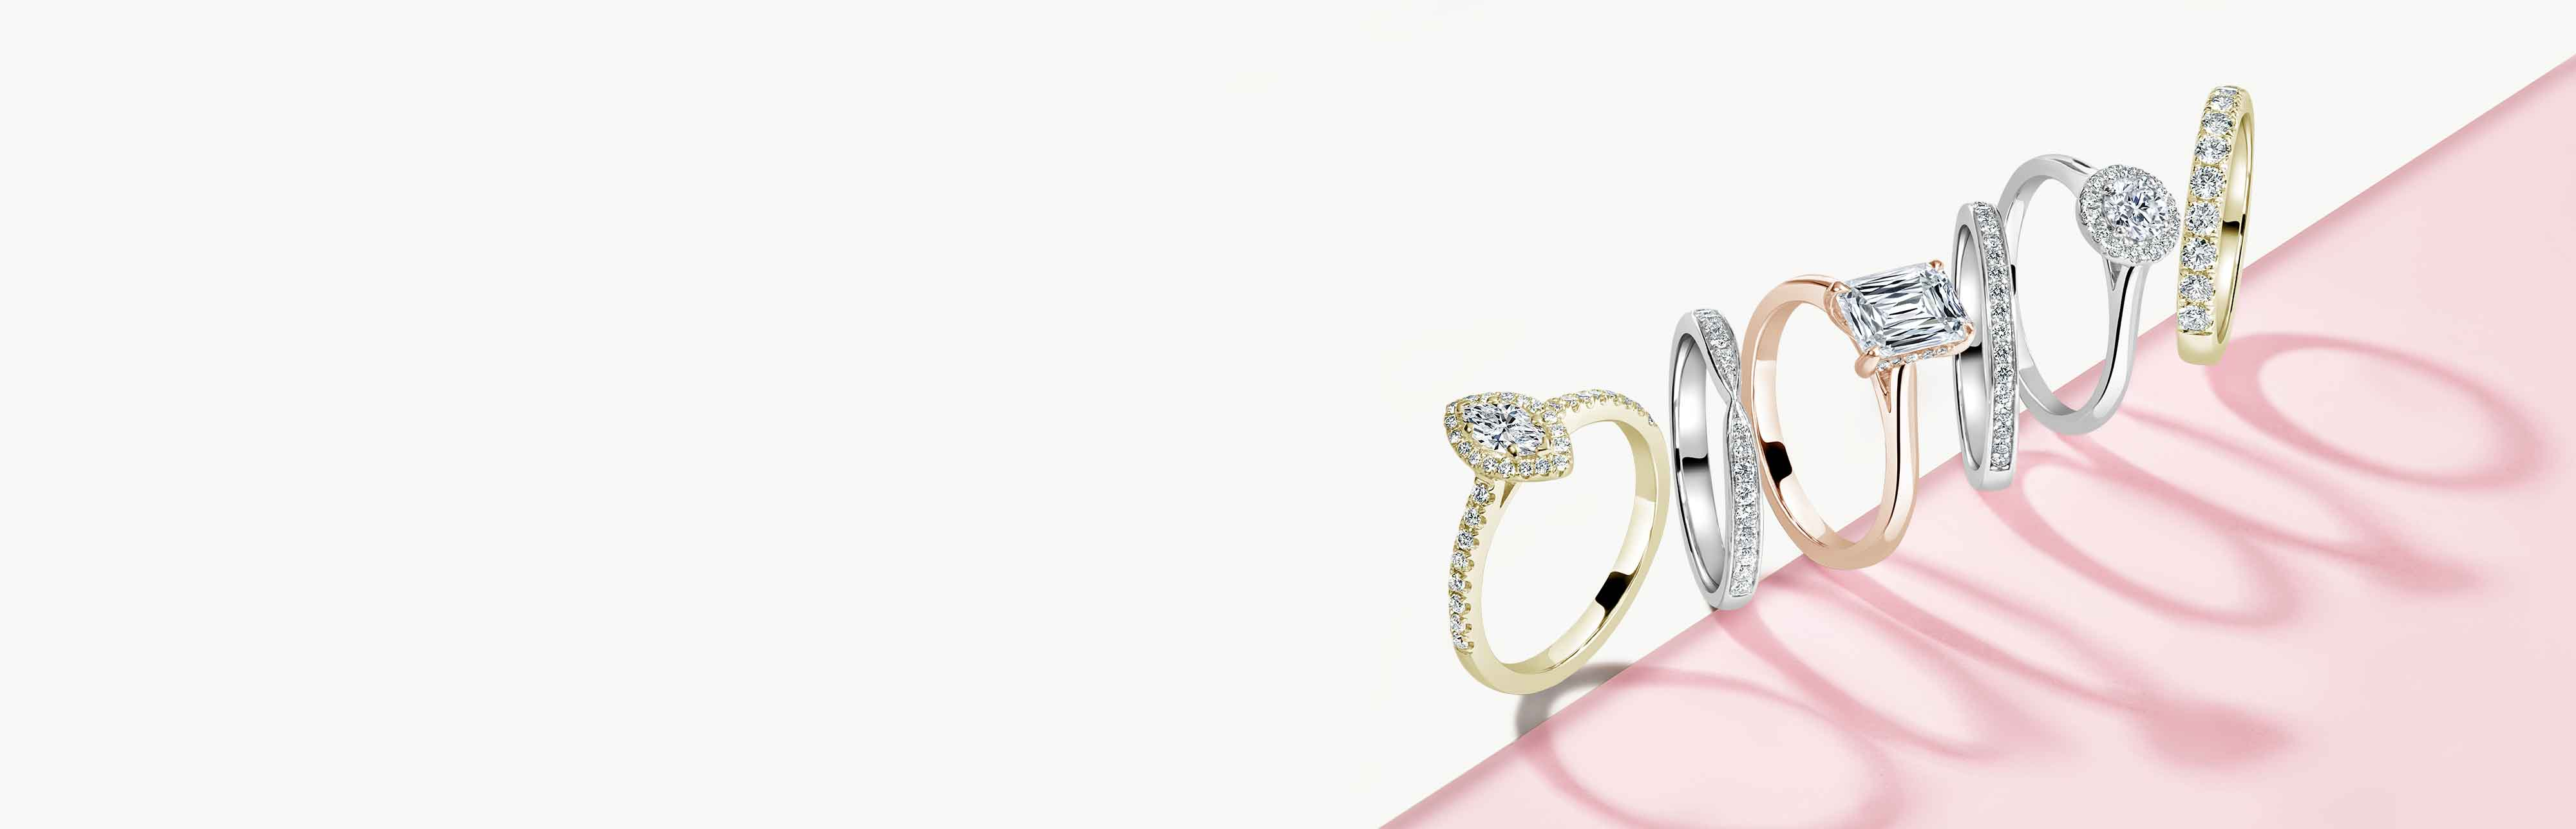 Rose Gold Princess Cut Engagement Rings - Steven Stone